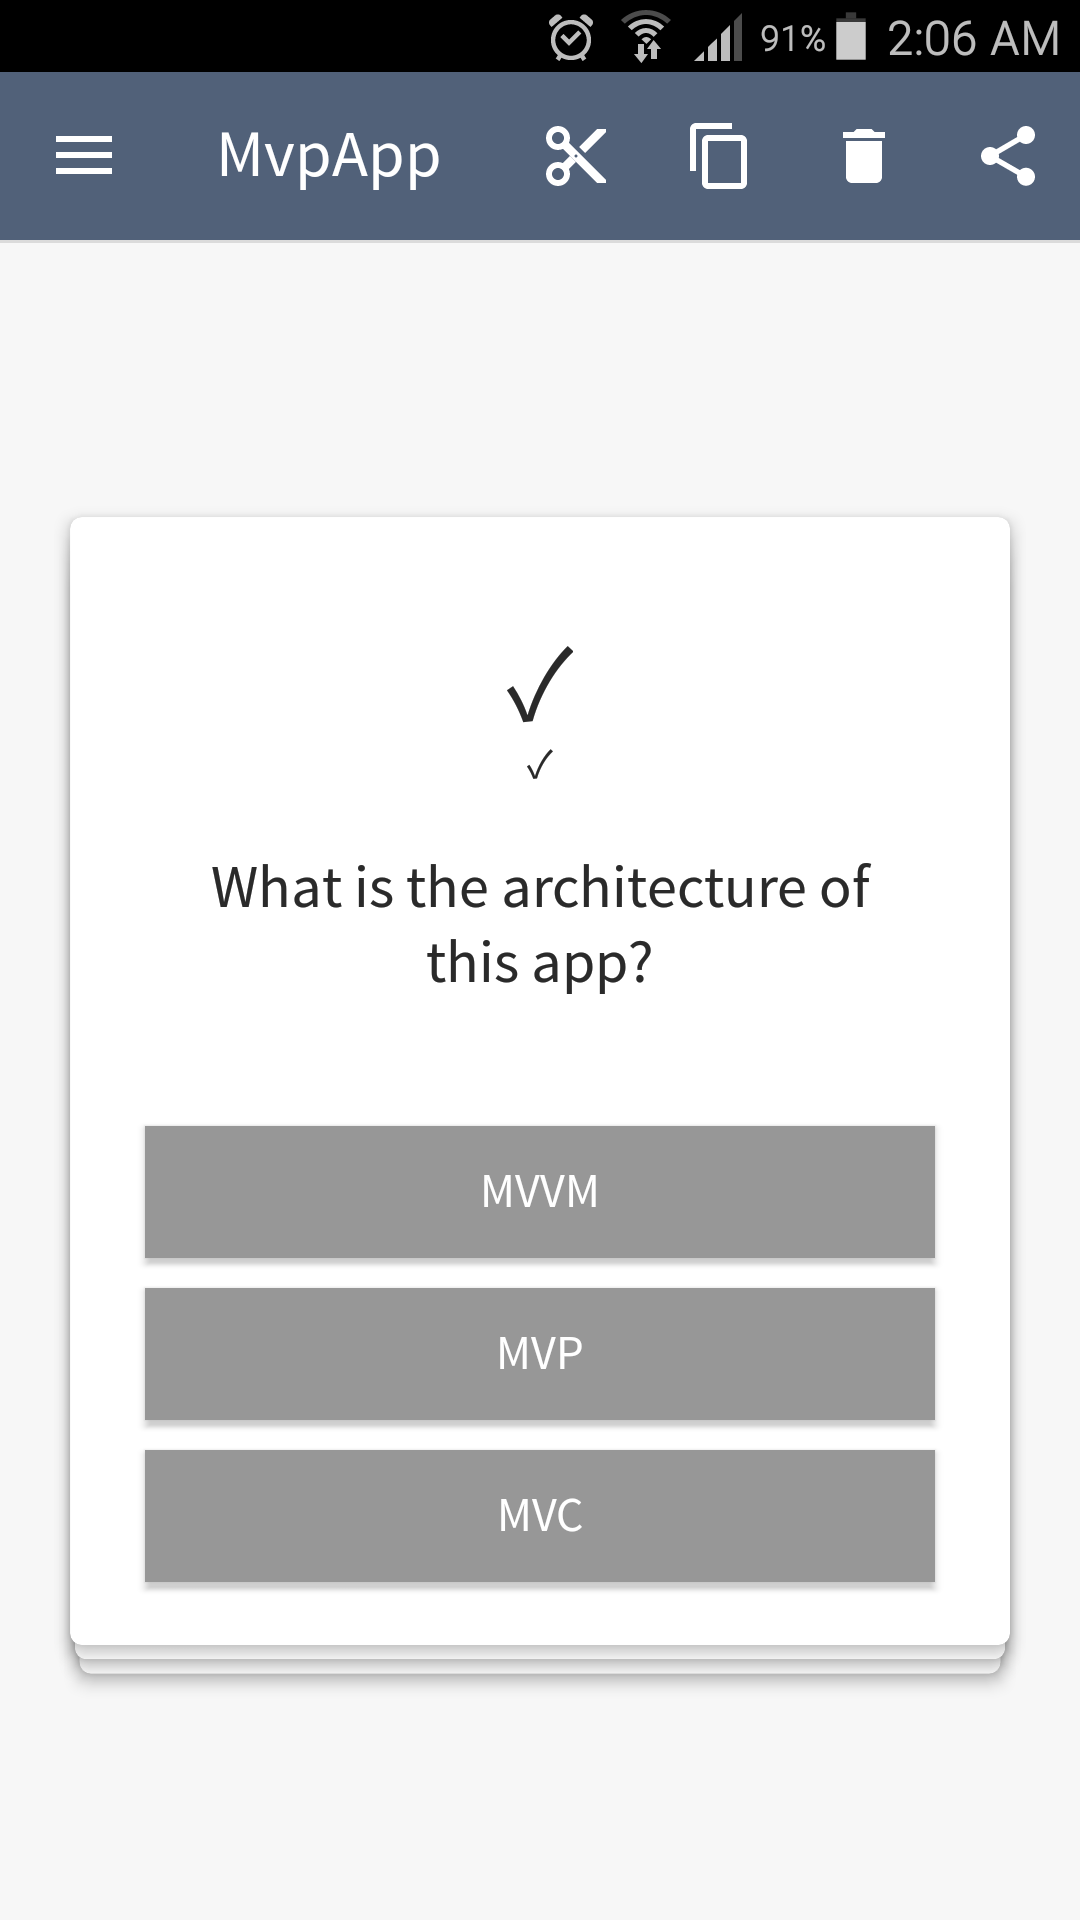 GitHub - MindorksOpenSource/android-mvp-architecture: This